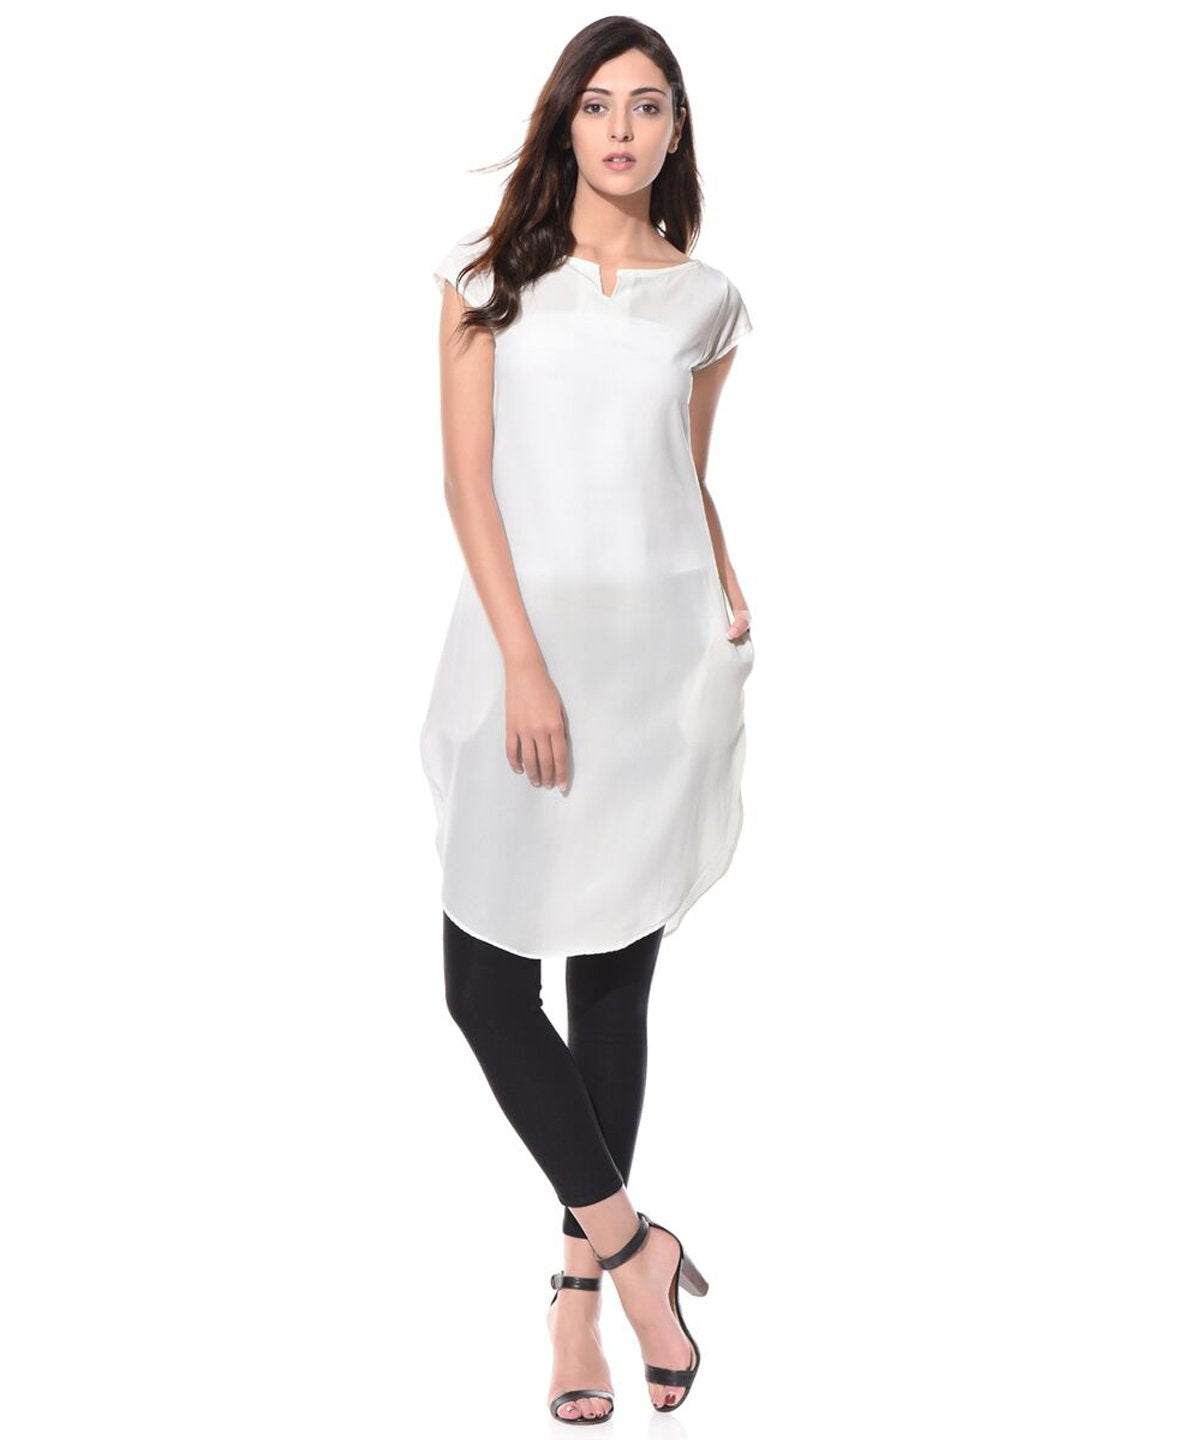 Uptownie Plus Solid White Cap Sleeves Long Crepe Tunic 1 clearance sale, Buy3get2